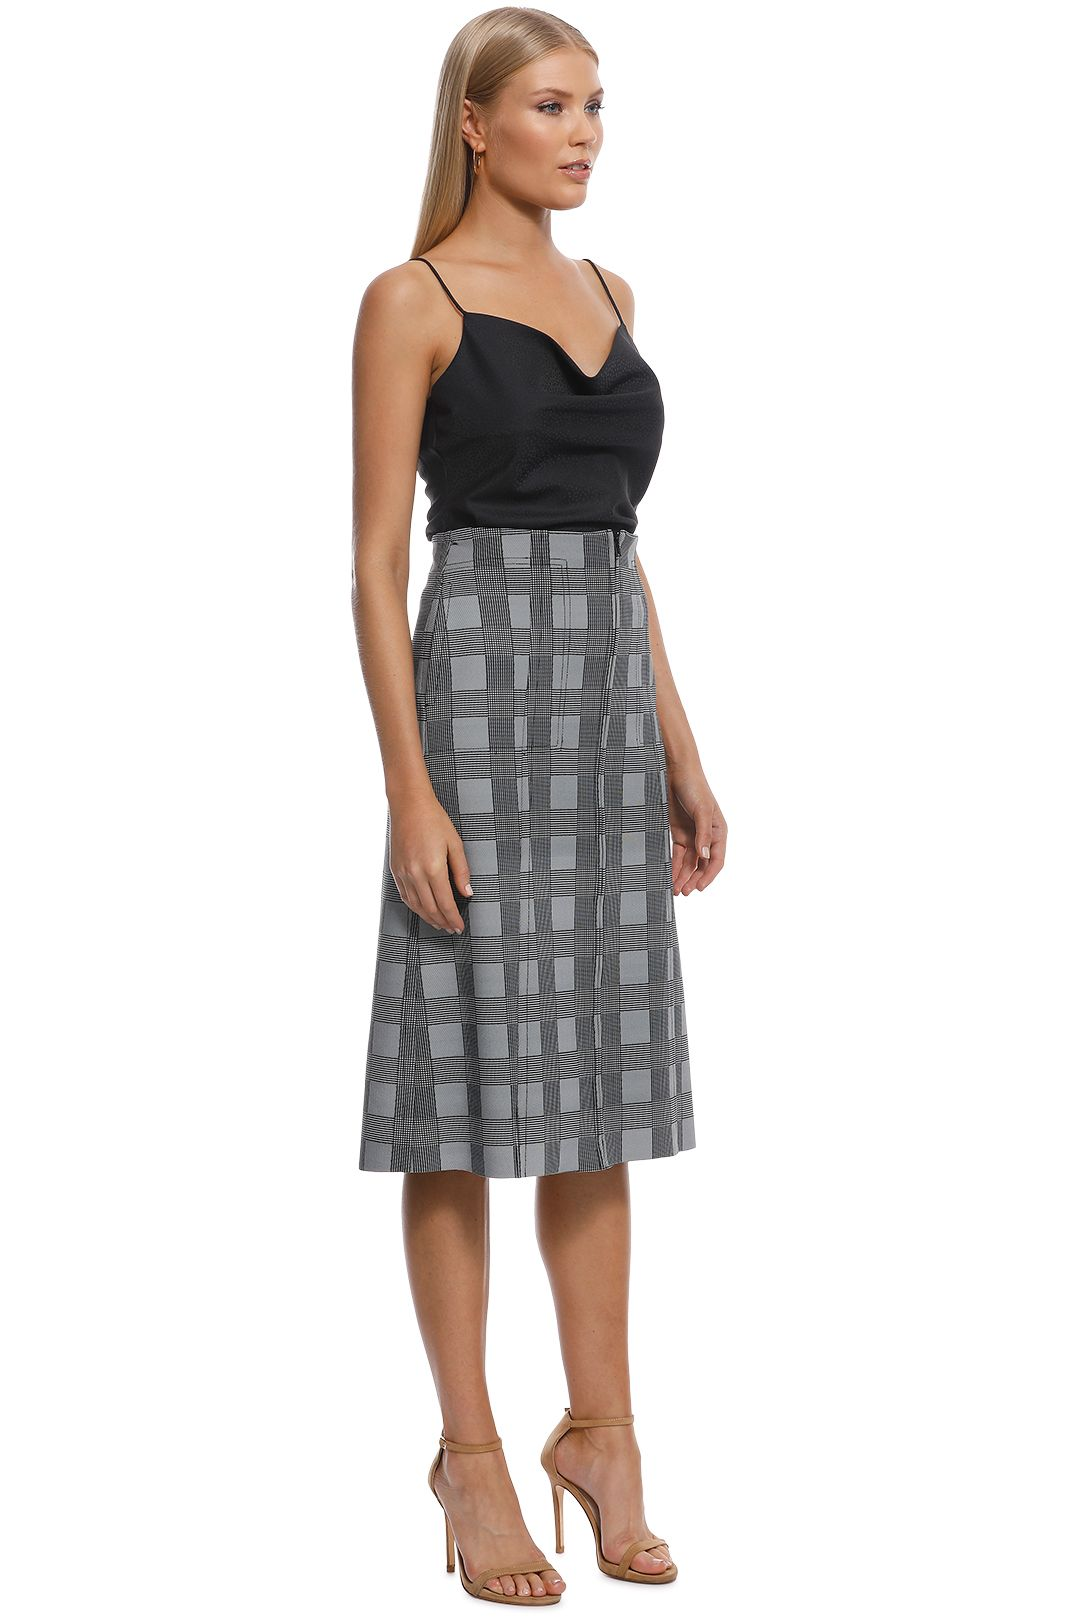 Scanlan Theodore - Scuba Prince of Wales Skirt - Check - Side